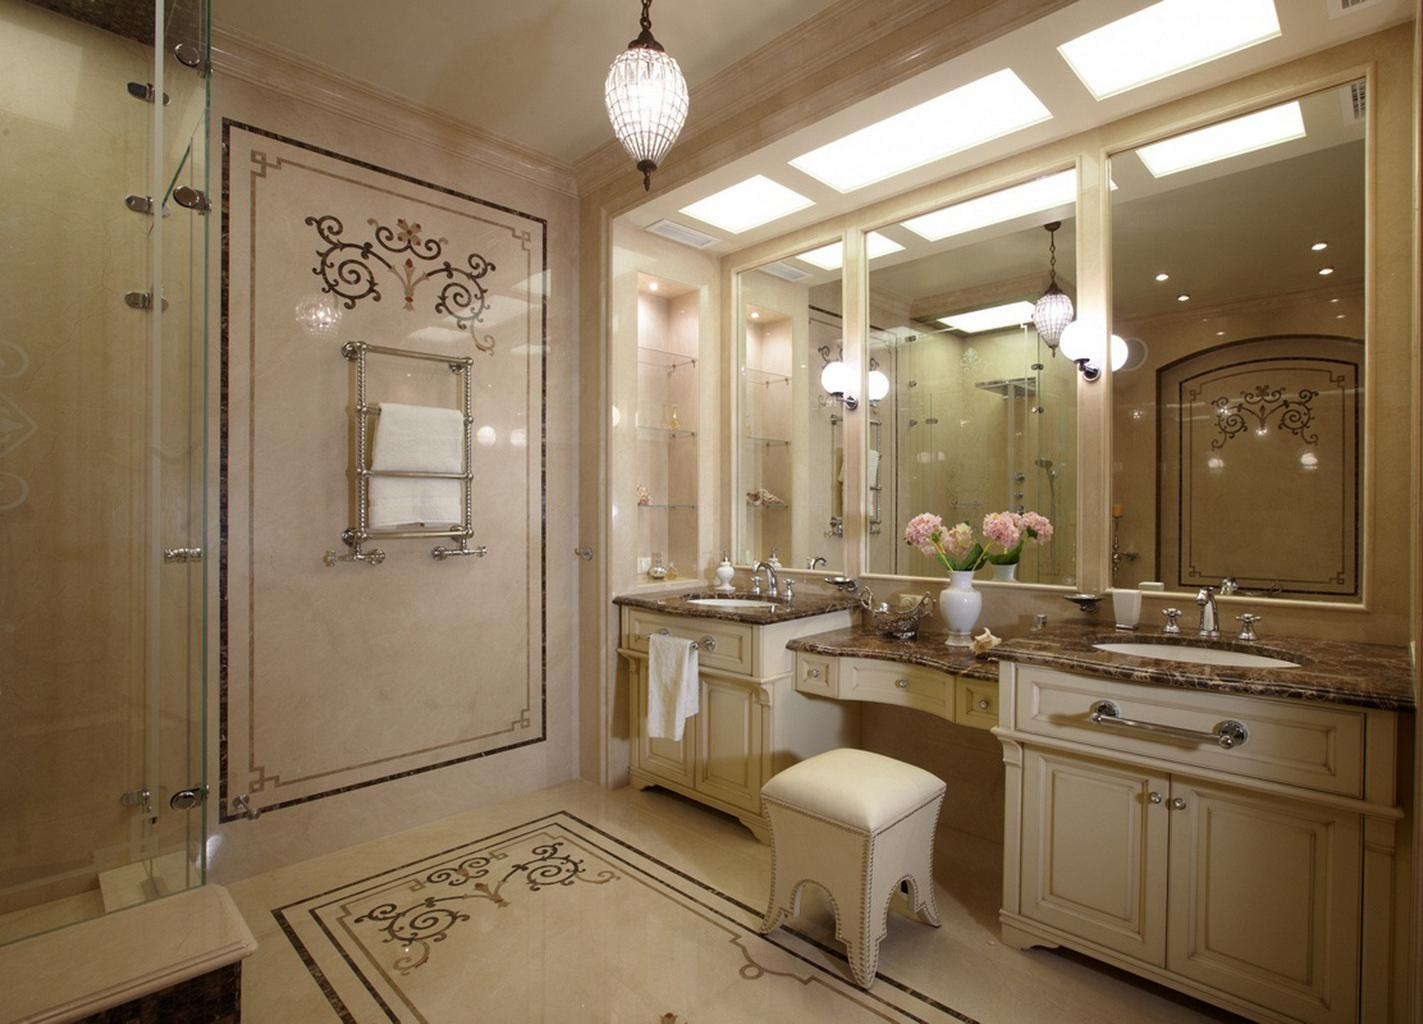 Bathroom in dull creamy white tones with stage light and the pouff